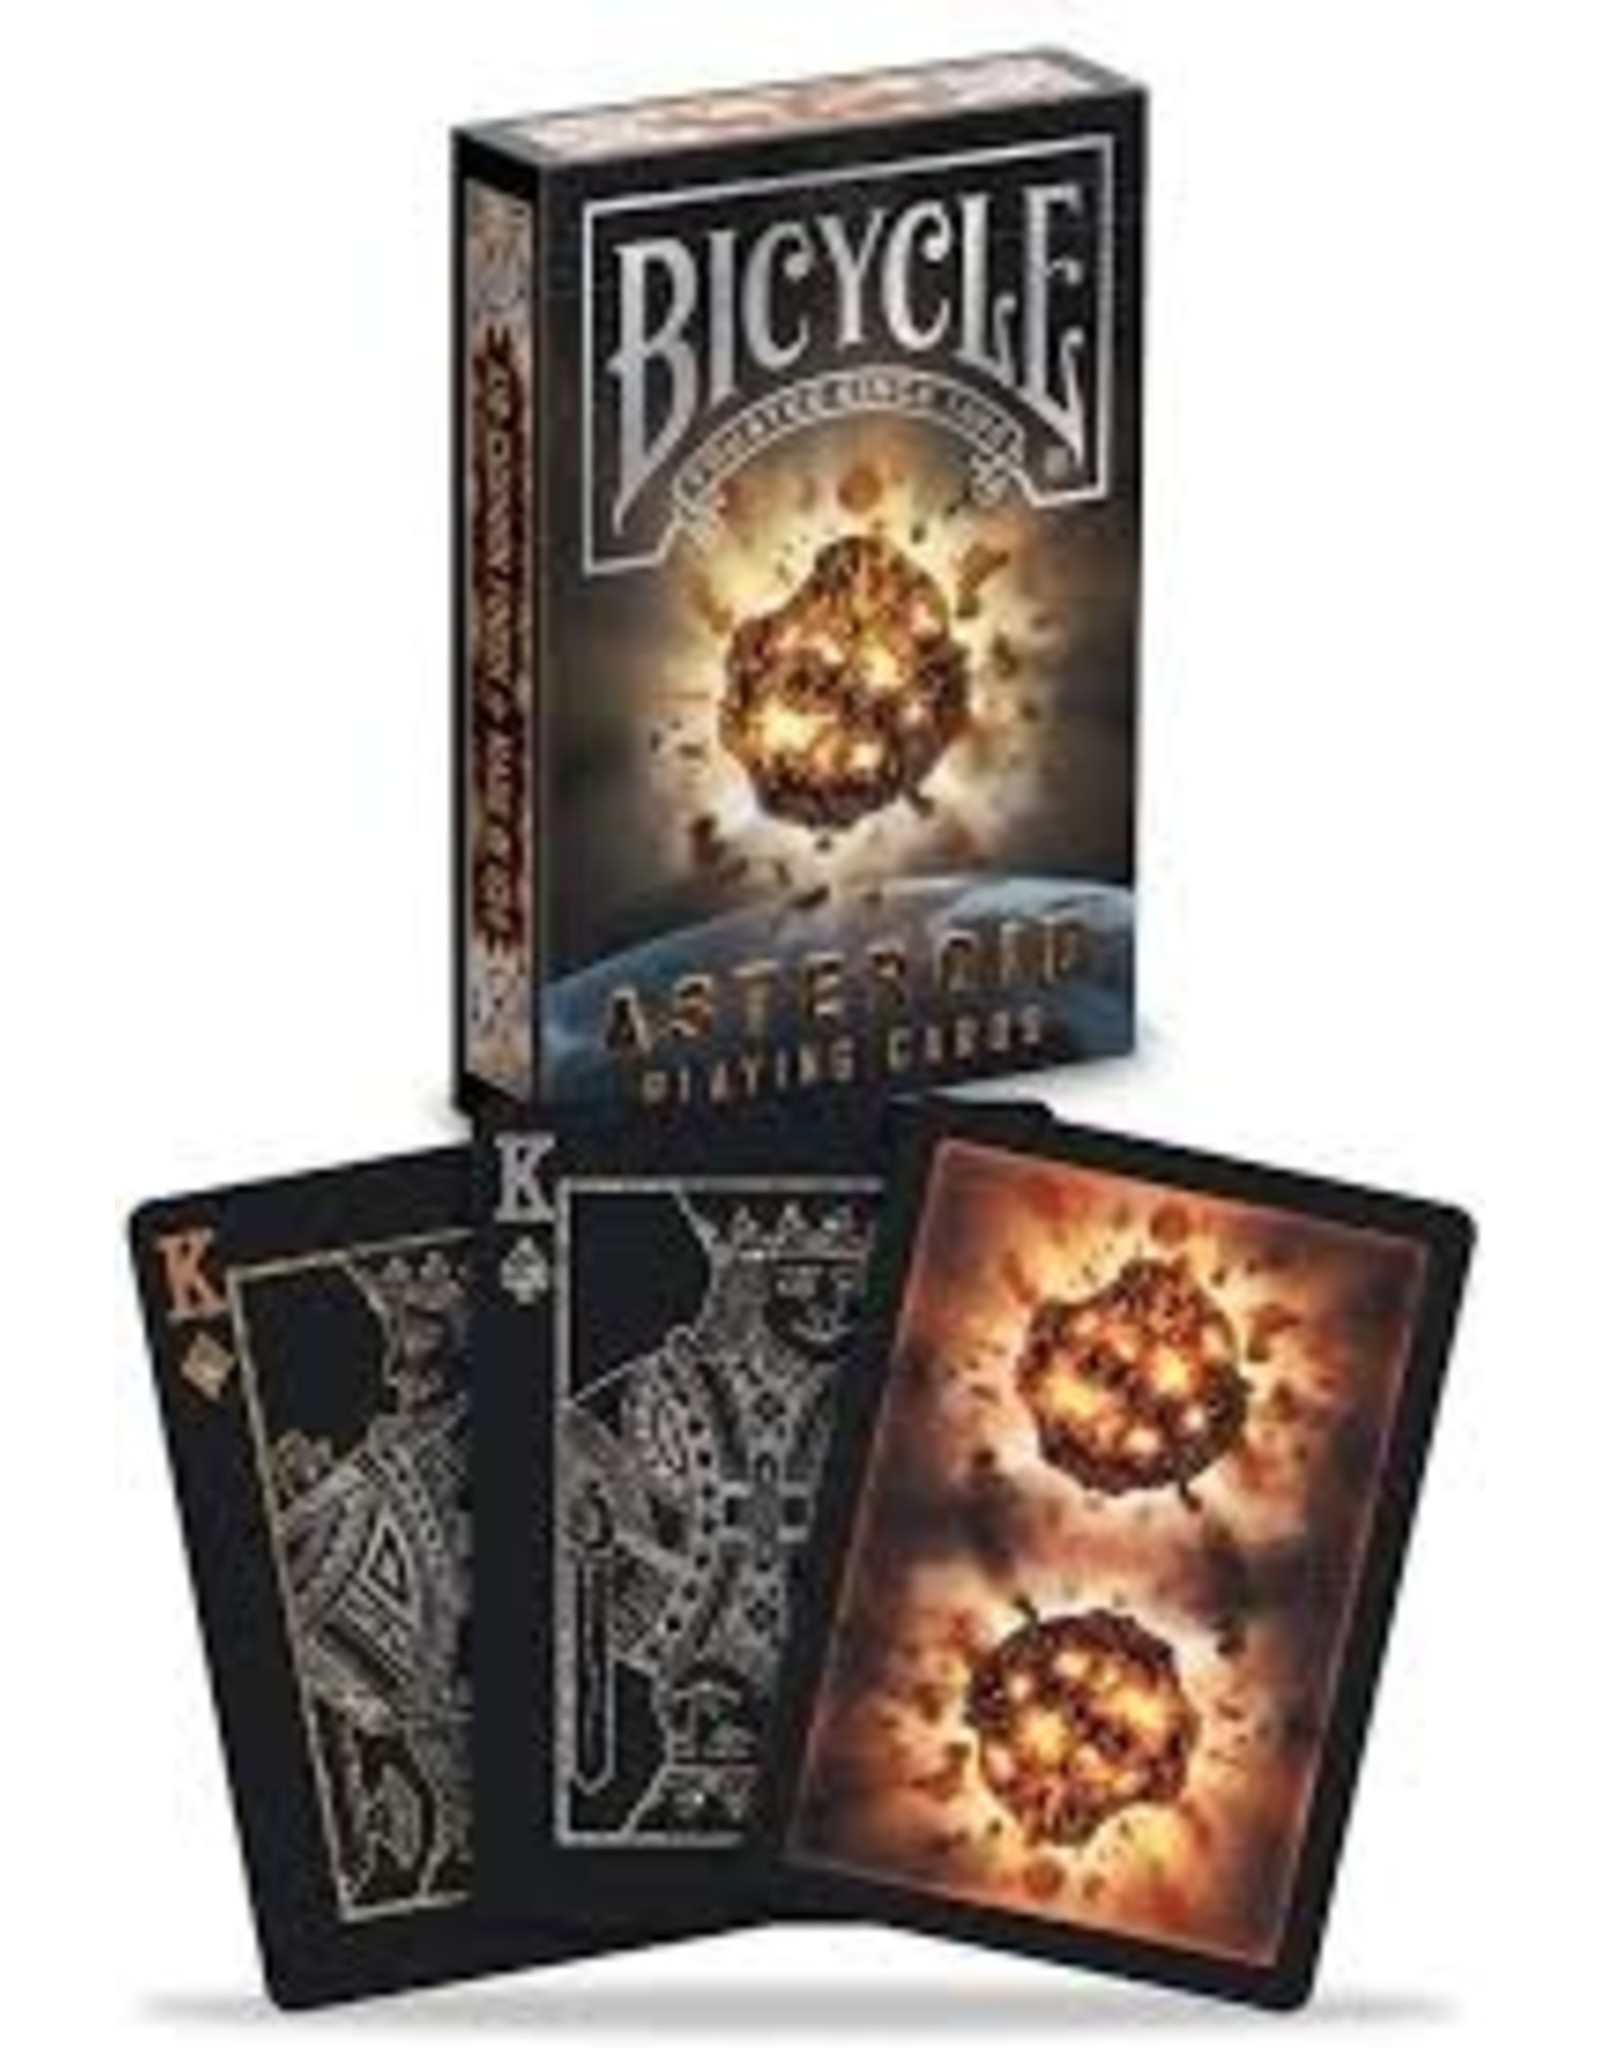 US Playing Card Co. Bicycle Asteroid